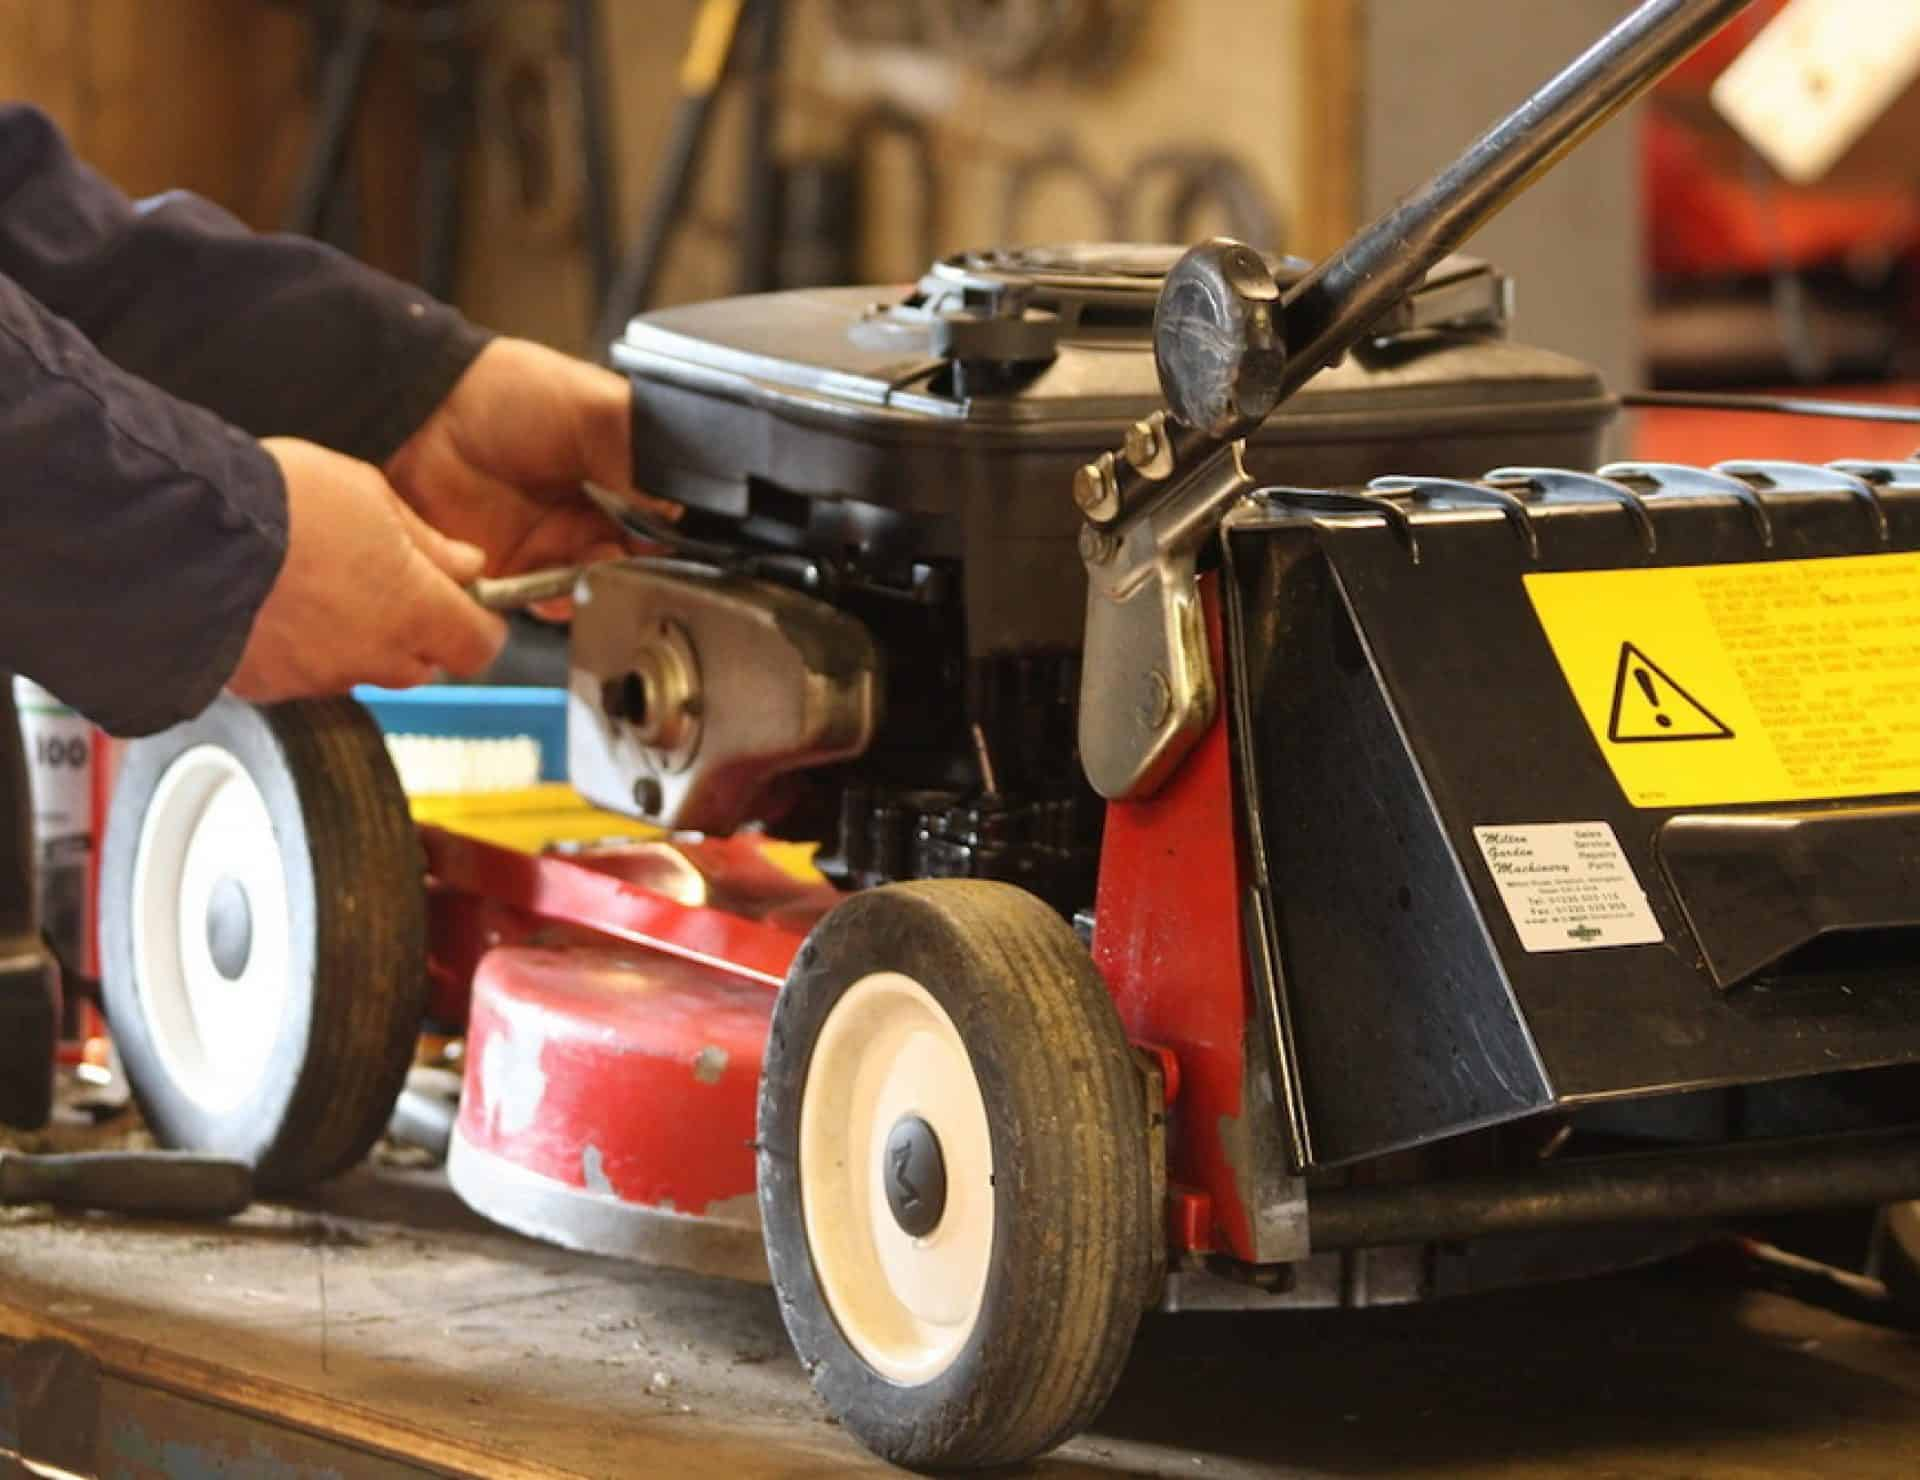 Prepare your mower for winter storage